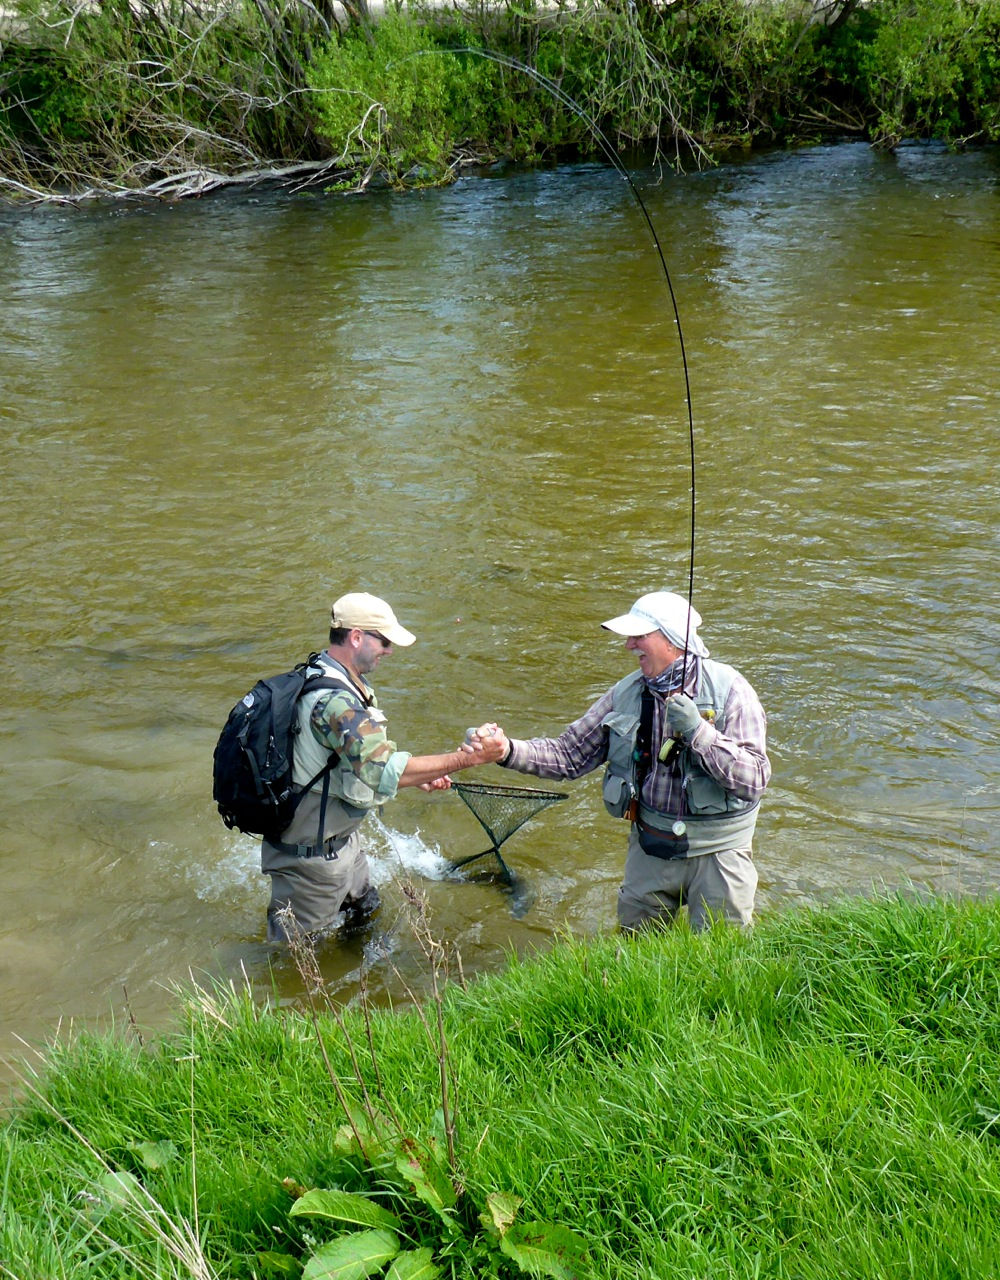 That great moment for both the guide and the angler when the fish is safely in the net!